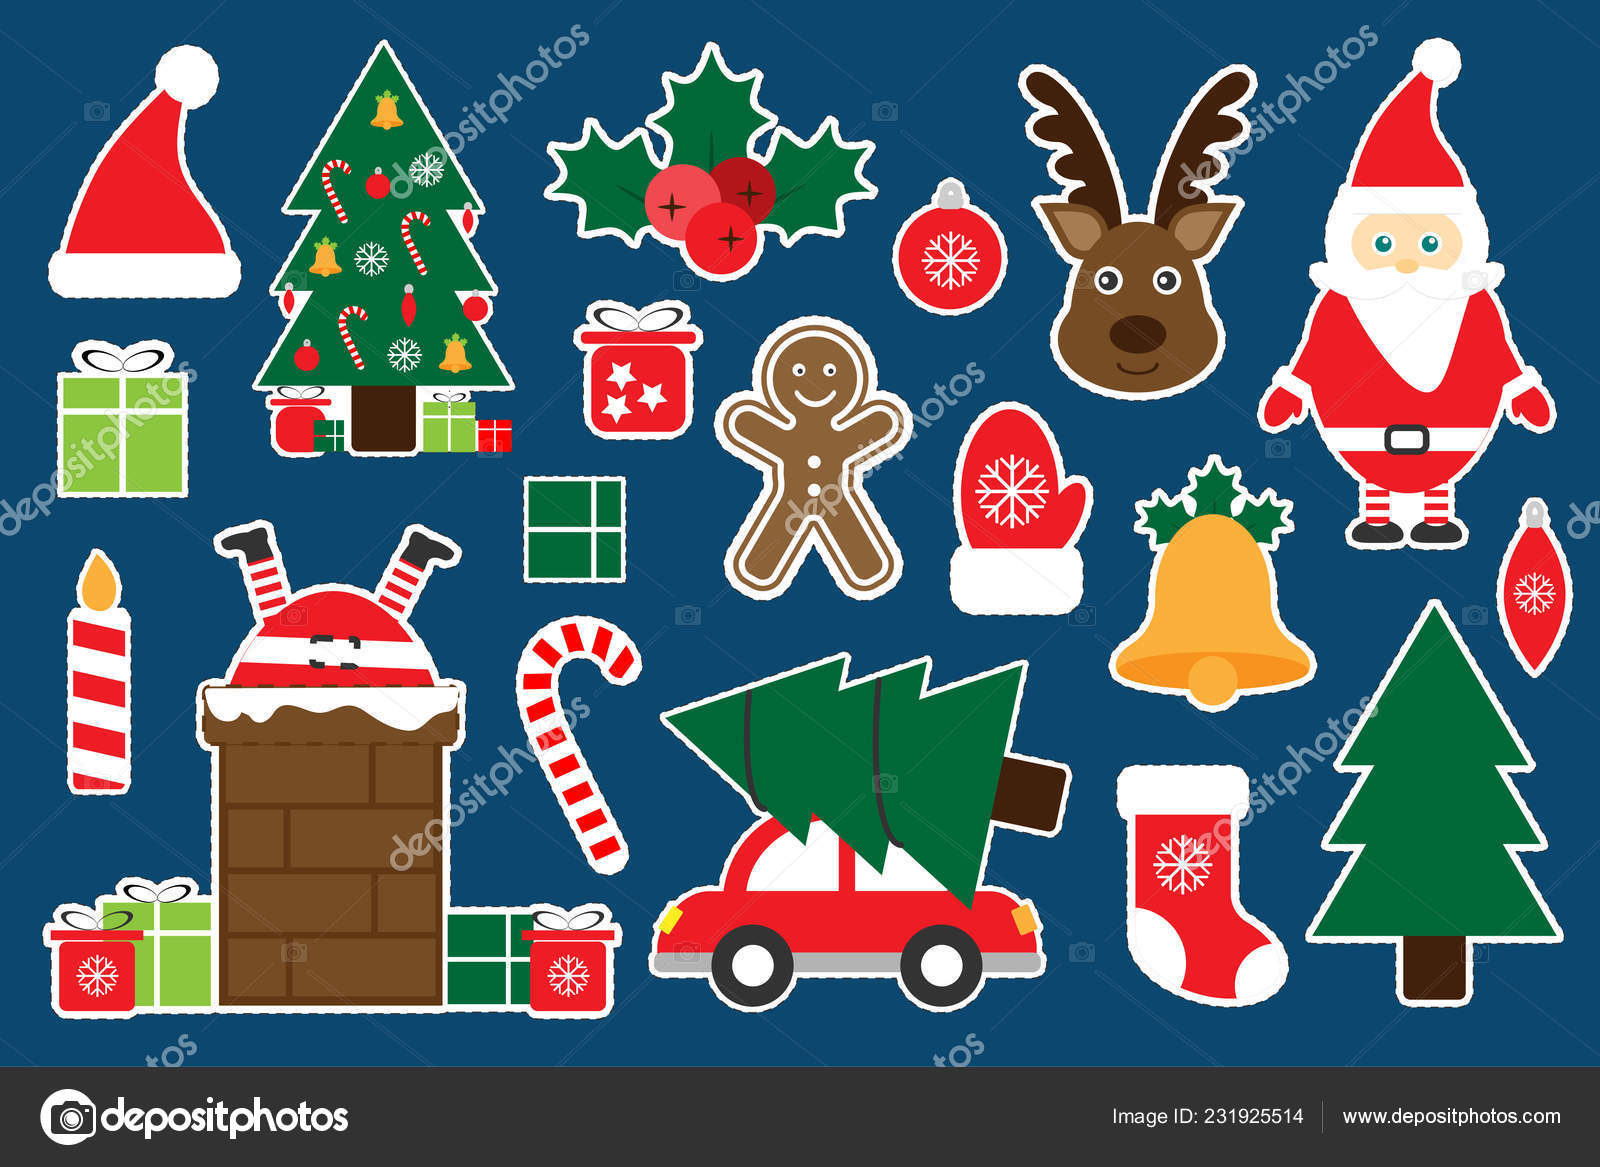 Pictures Christmas Kids Different Colorful Christmas